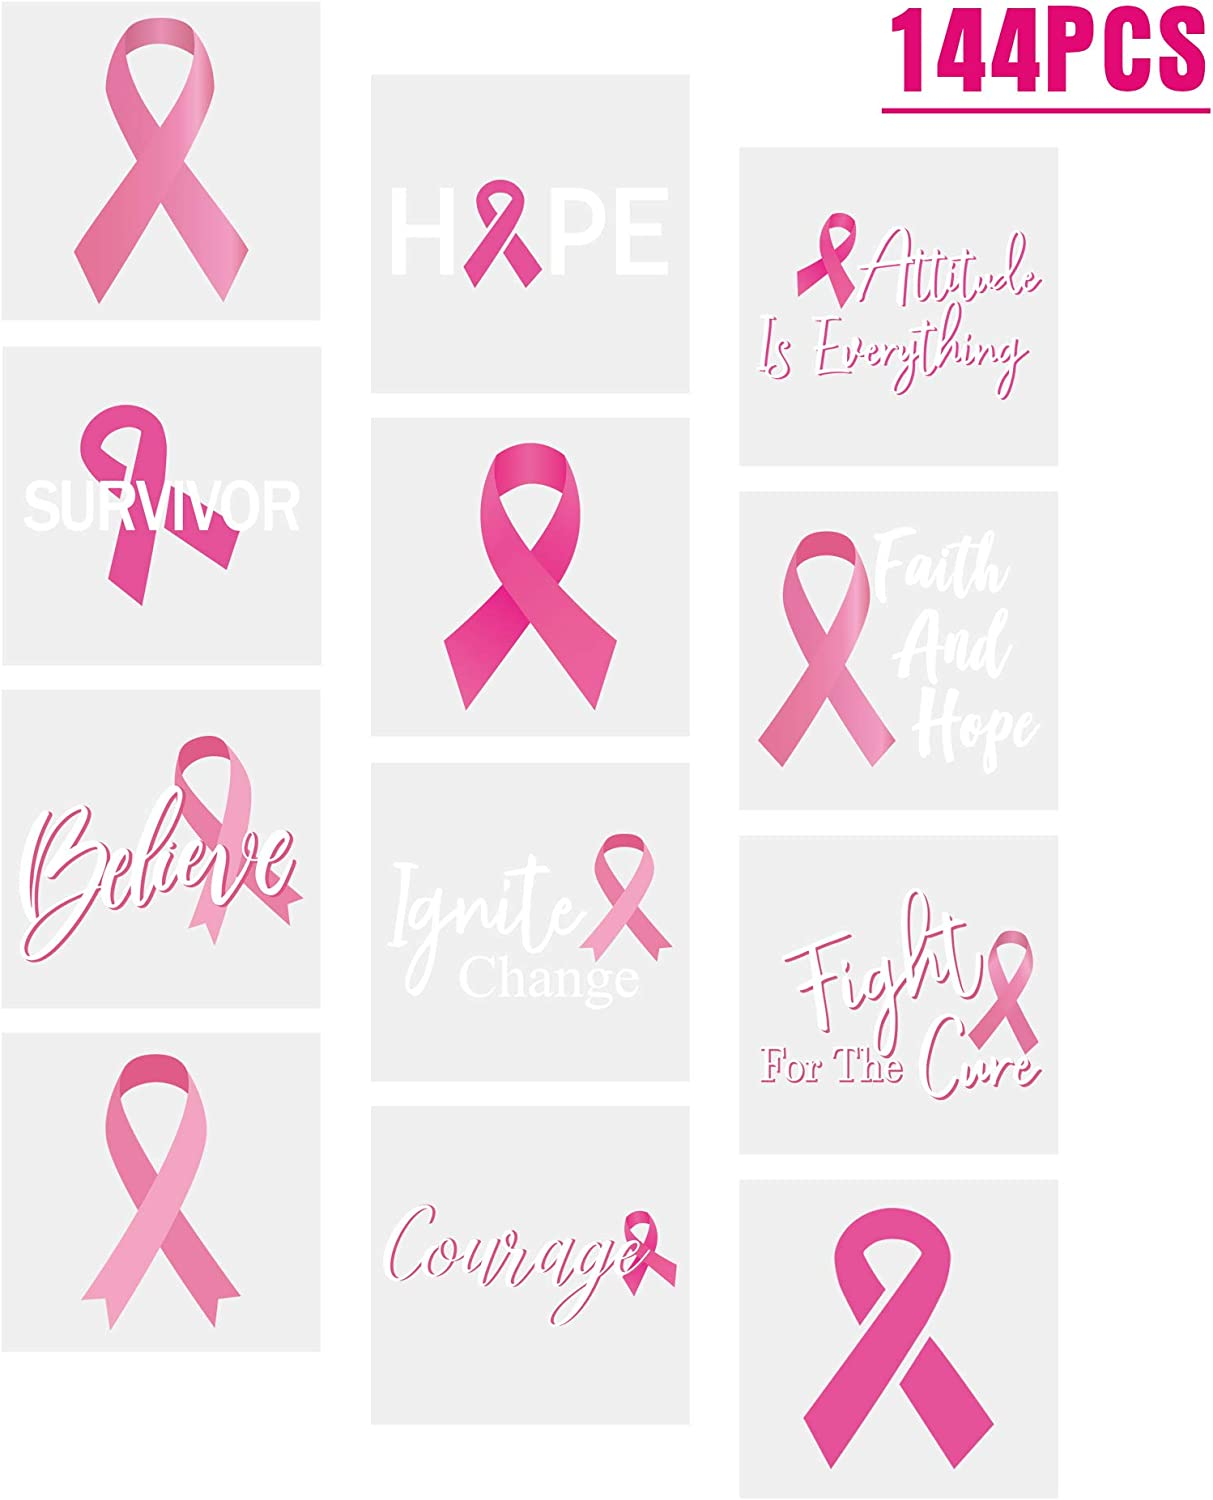 Amazon Com 3omething New Breast Cancer Awareness Pink Ribbon Tattoos Walk Football Team Run Fundraising Giveaways Favors 144ct Toys Games